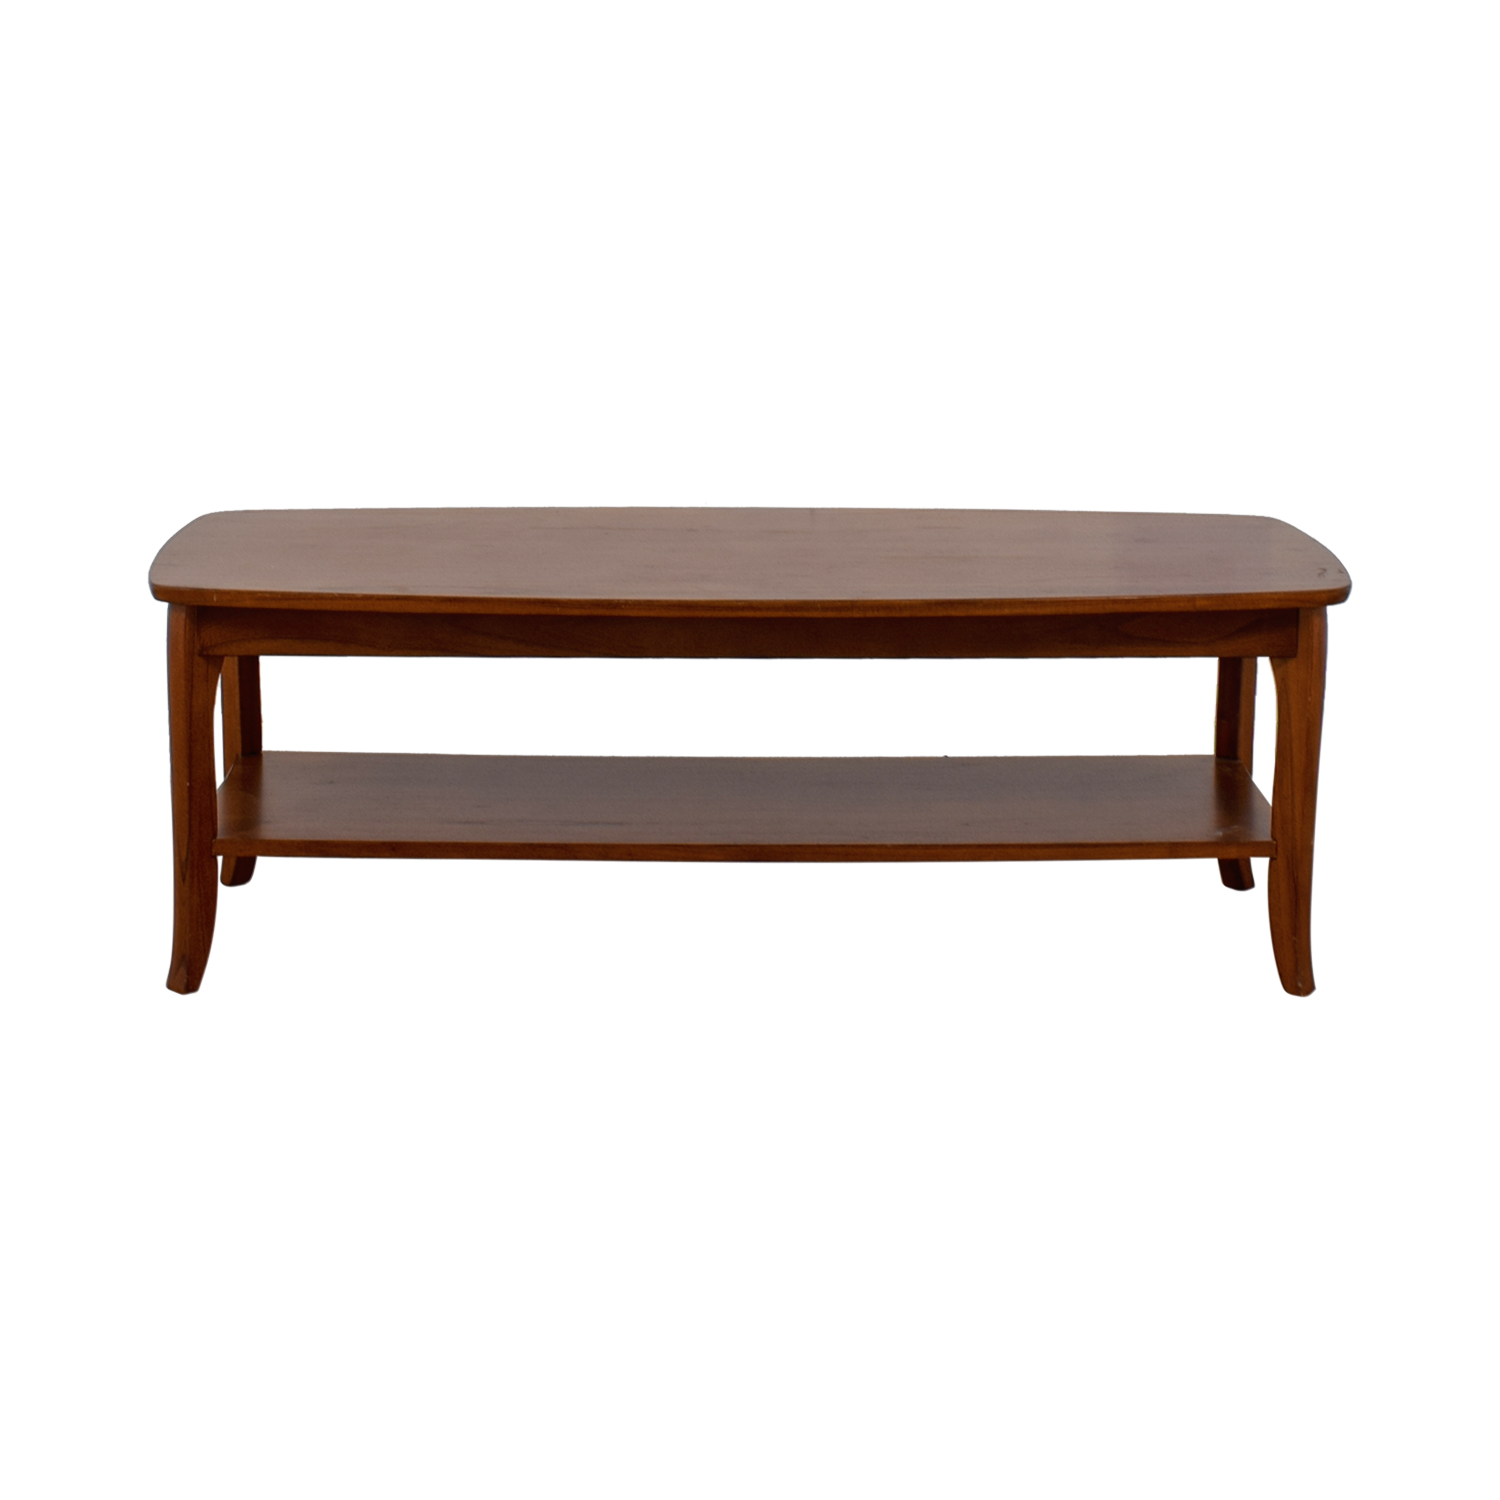 shop Pottery Barn Pottery Barn Wood Rectangular Coffee Table online